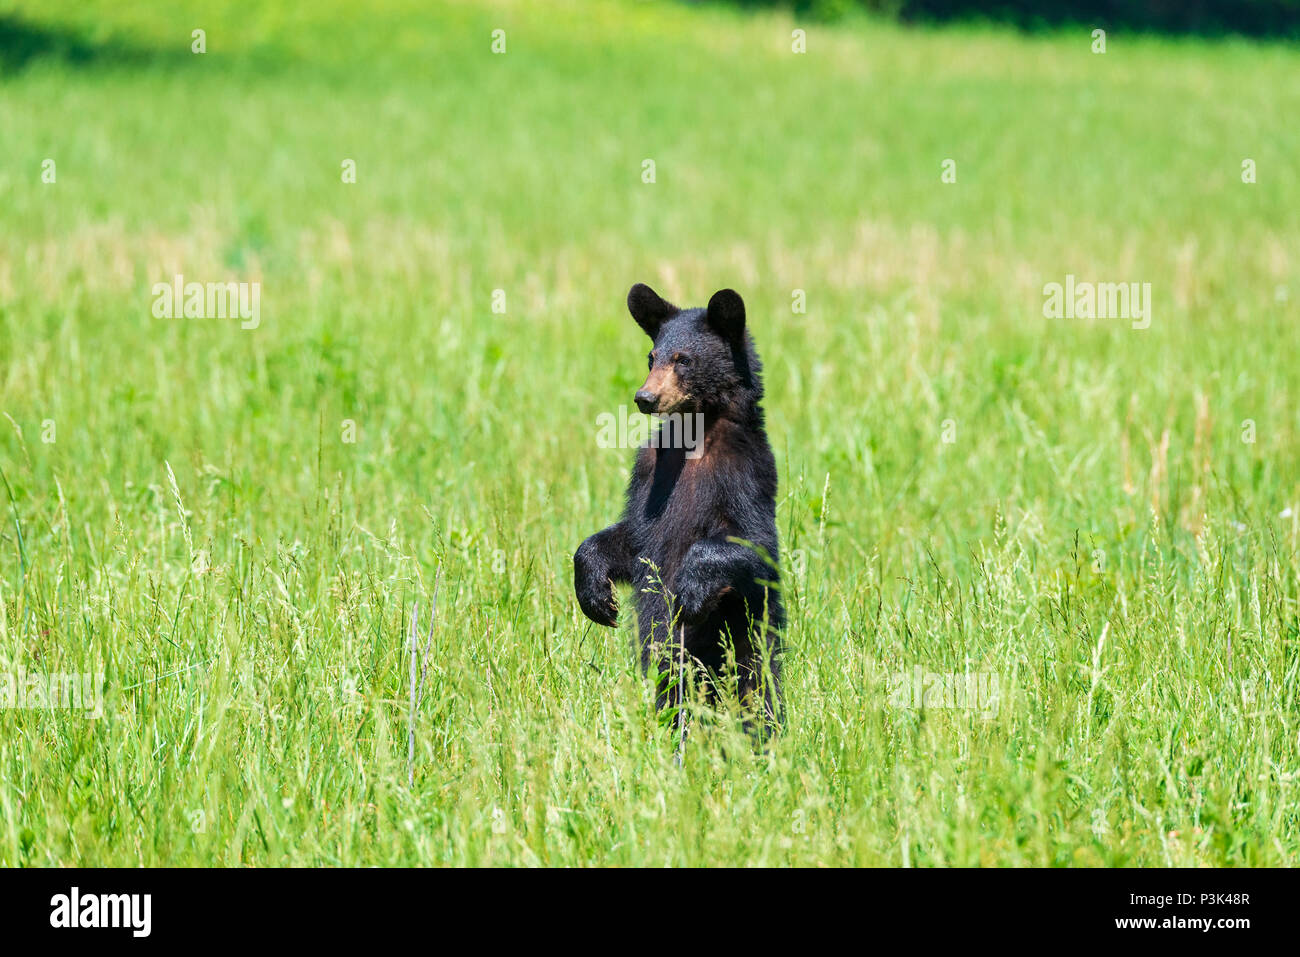 Horizontal shot of a standing Black Bear in a green field looking camera left with copy space - Stock Image